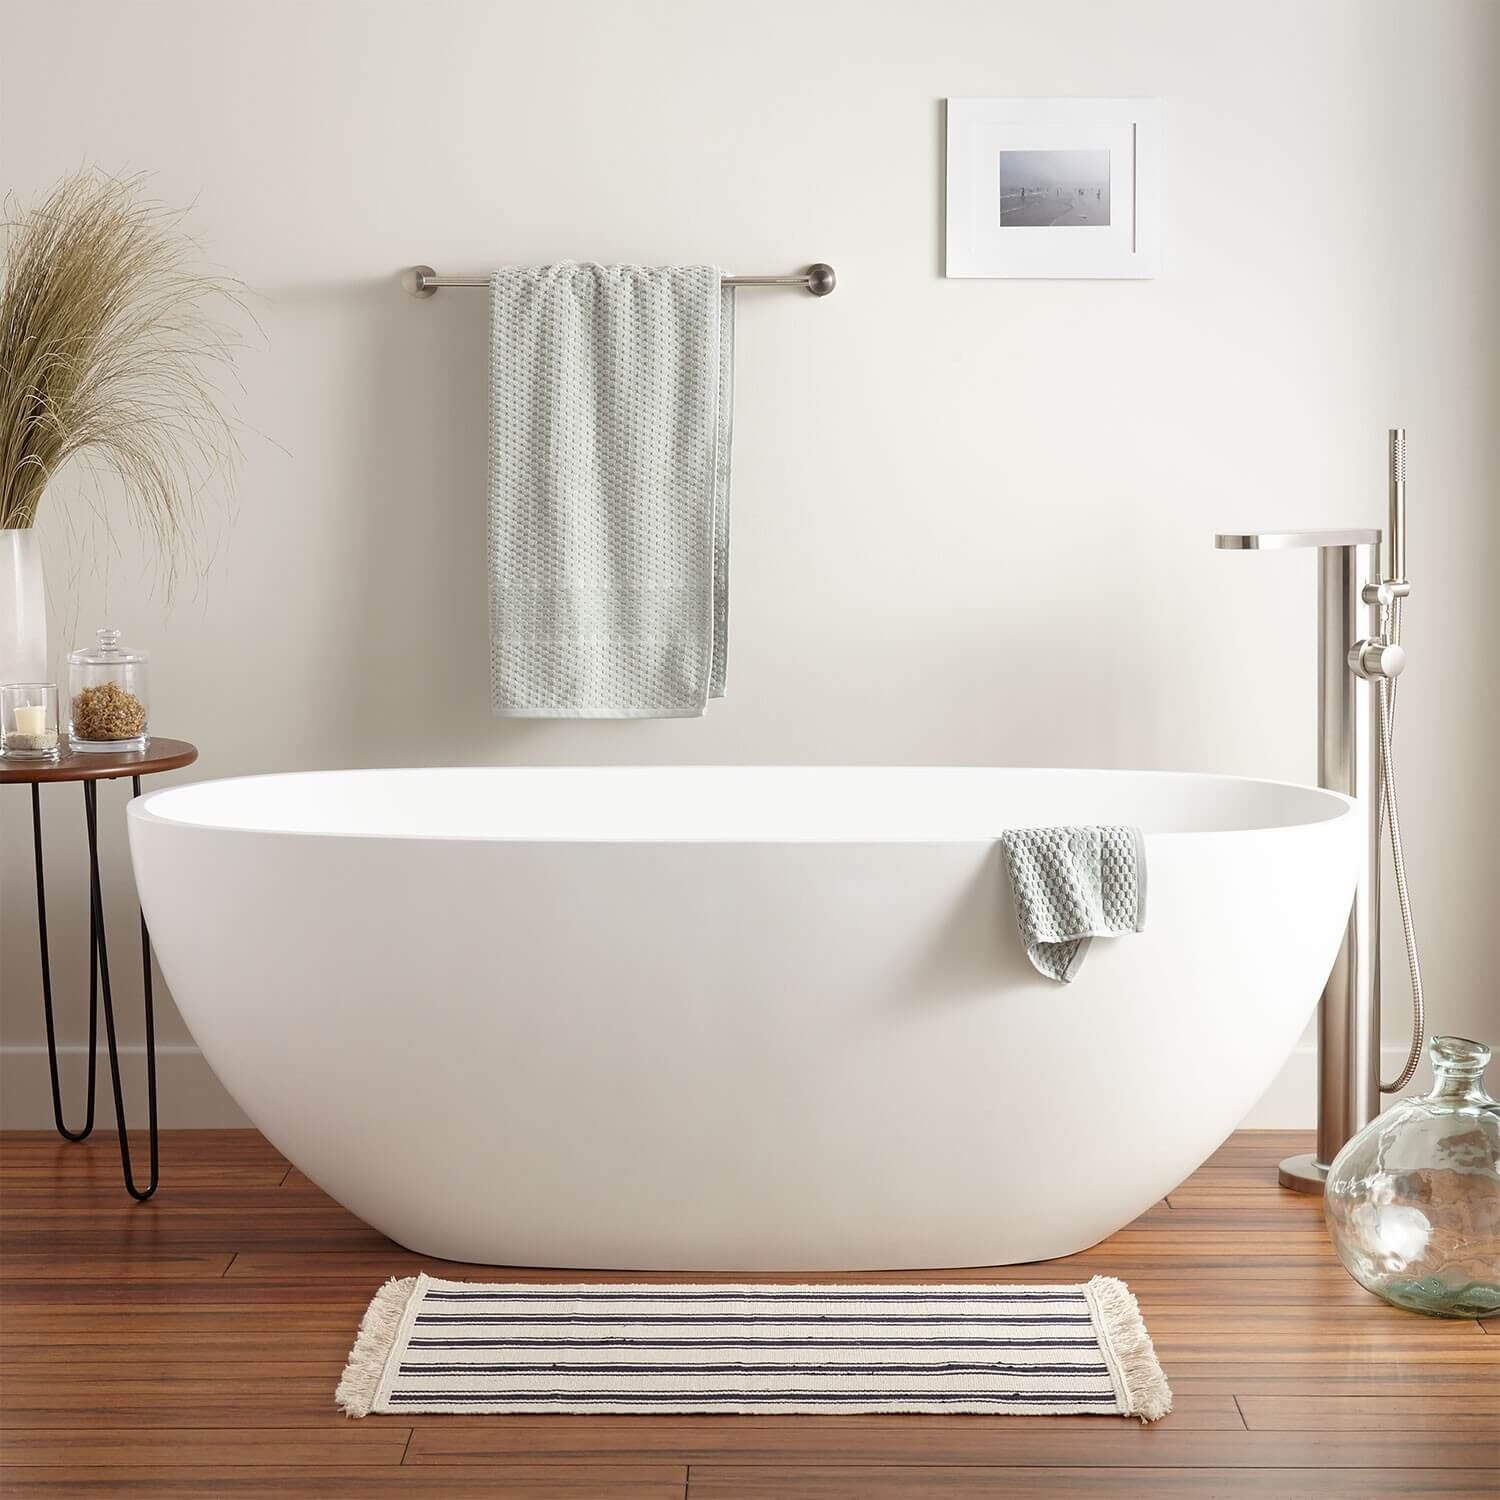 small bathroom tub ideas-11 – Live Enhanced